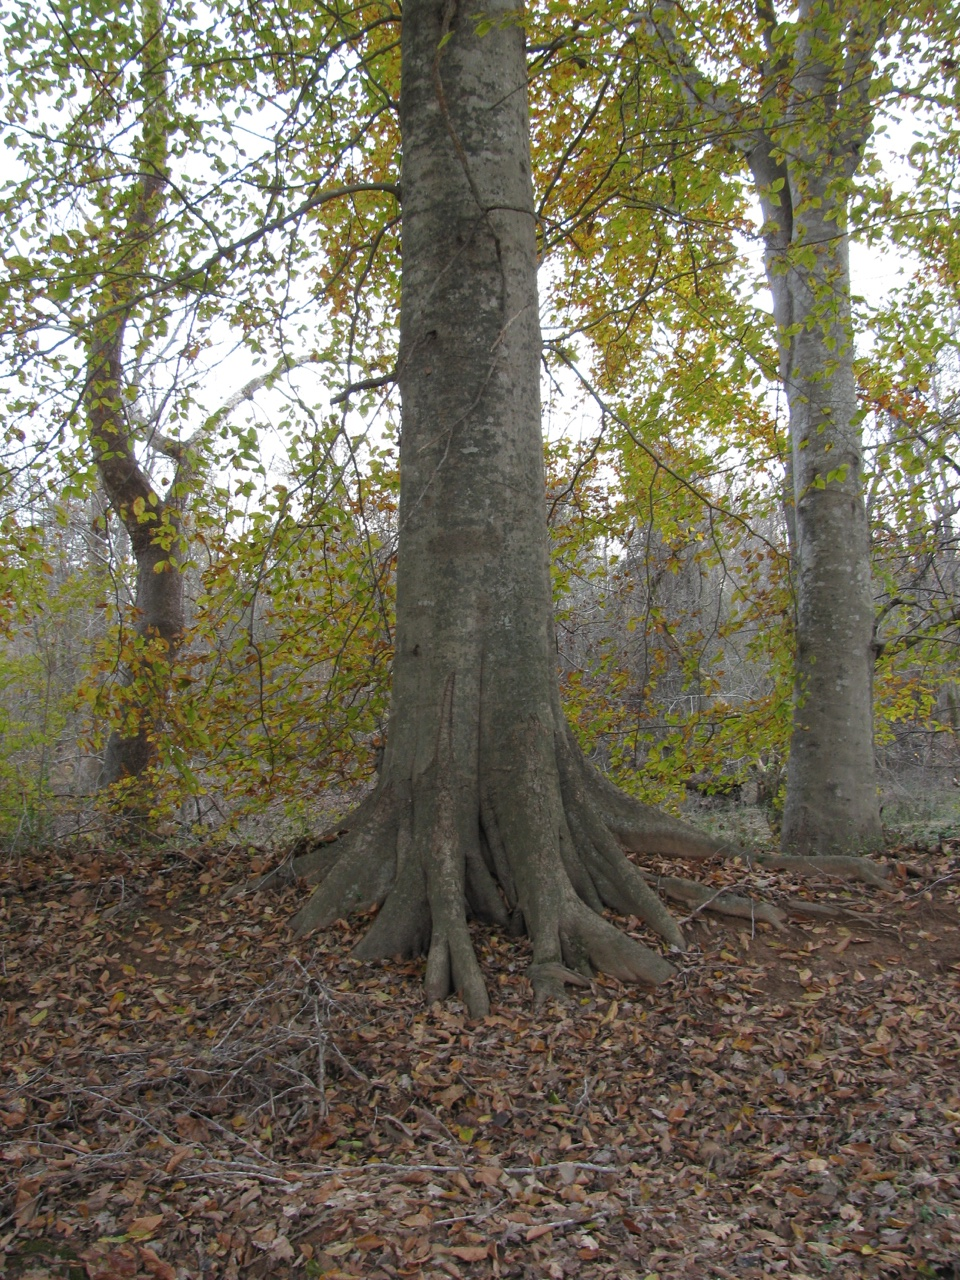 The Scientific Name is Fagus grandifolia. You will likely hear them called American Beech, Gray Beech, Red Beech, White Beech. This picture shows the Mature tree illustrating smooth, gray bark of Fagus grandifolia